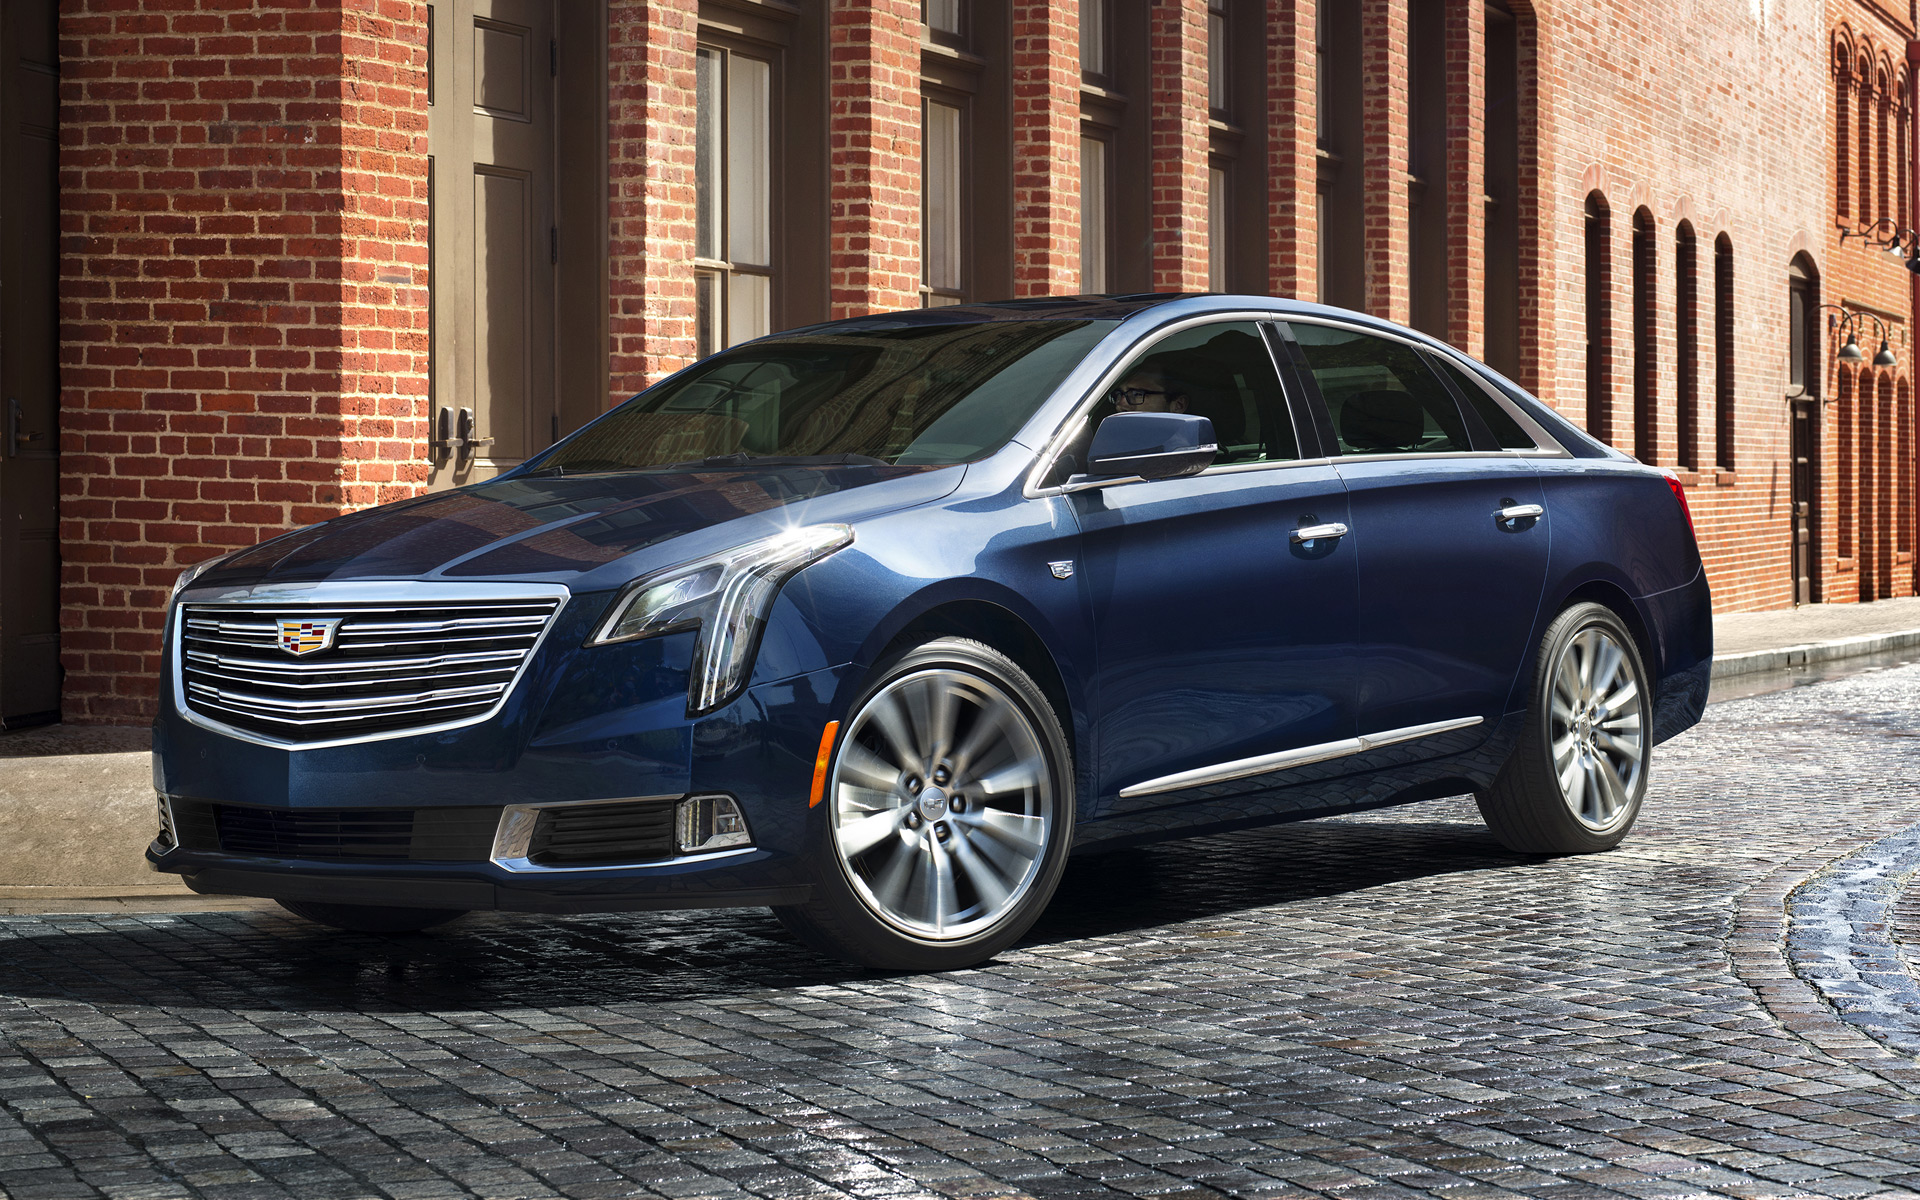 2018 F150 Review >> 2018 Cadillac XTS preview